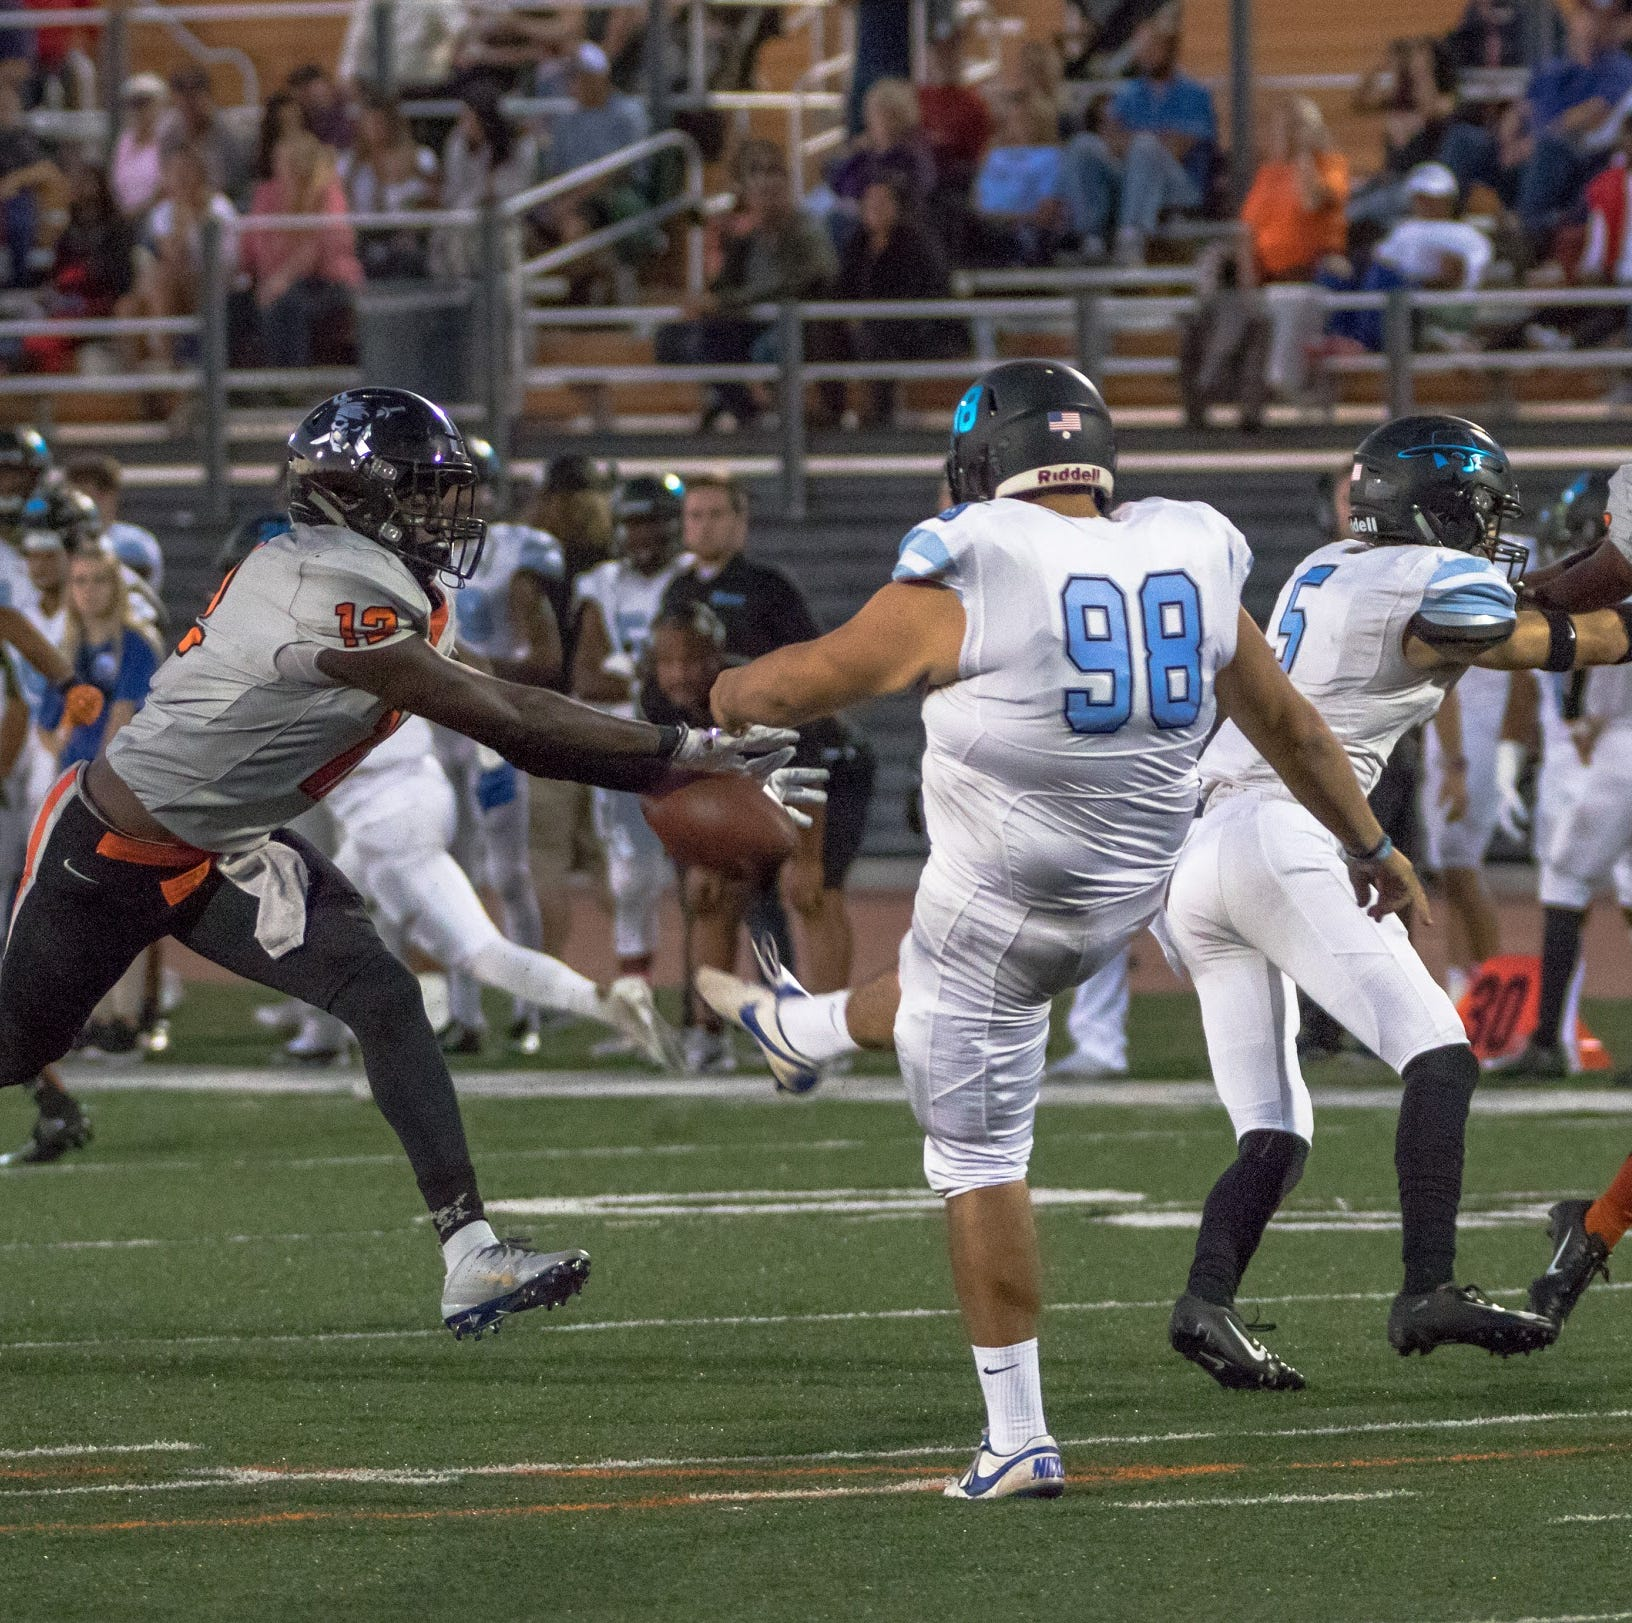 Ventura College football routs Moorpark College to retain the Citrus Cup